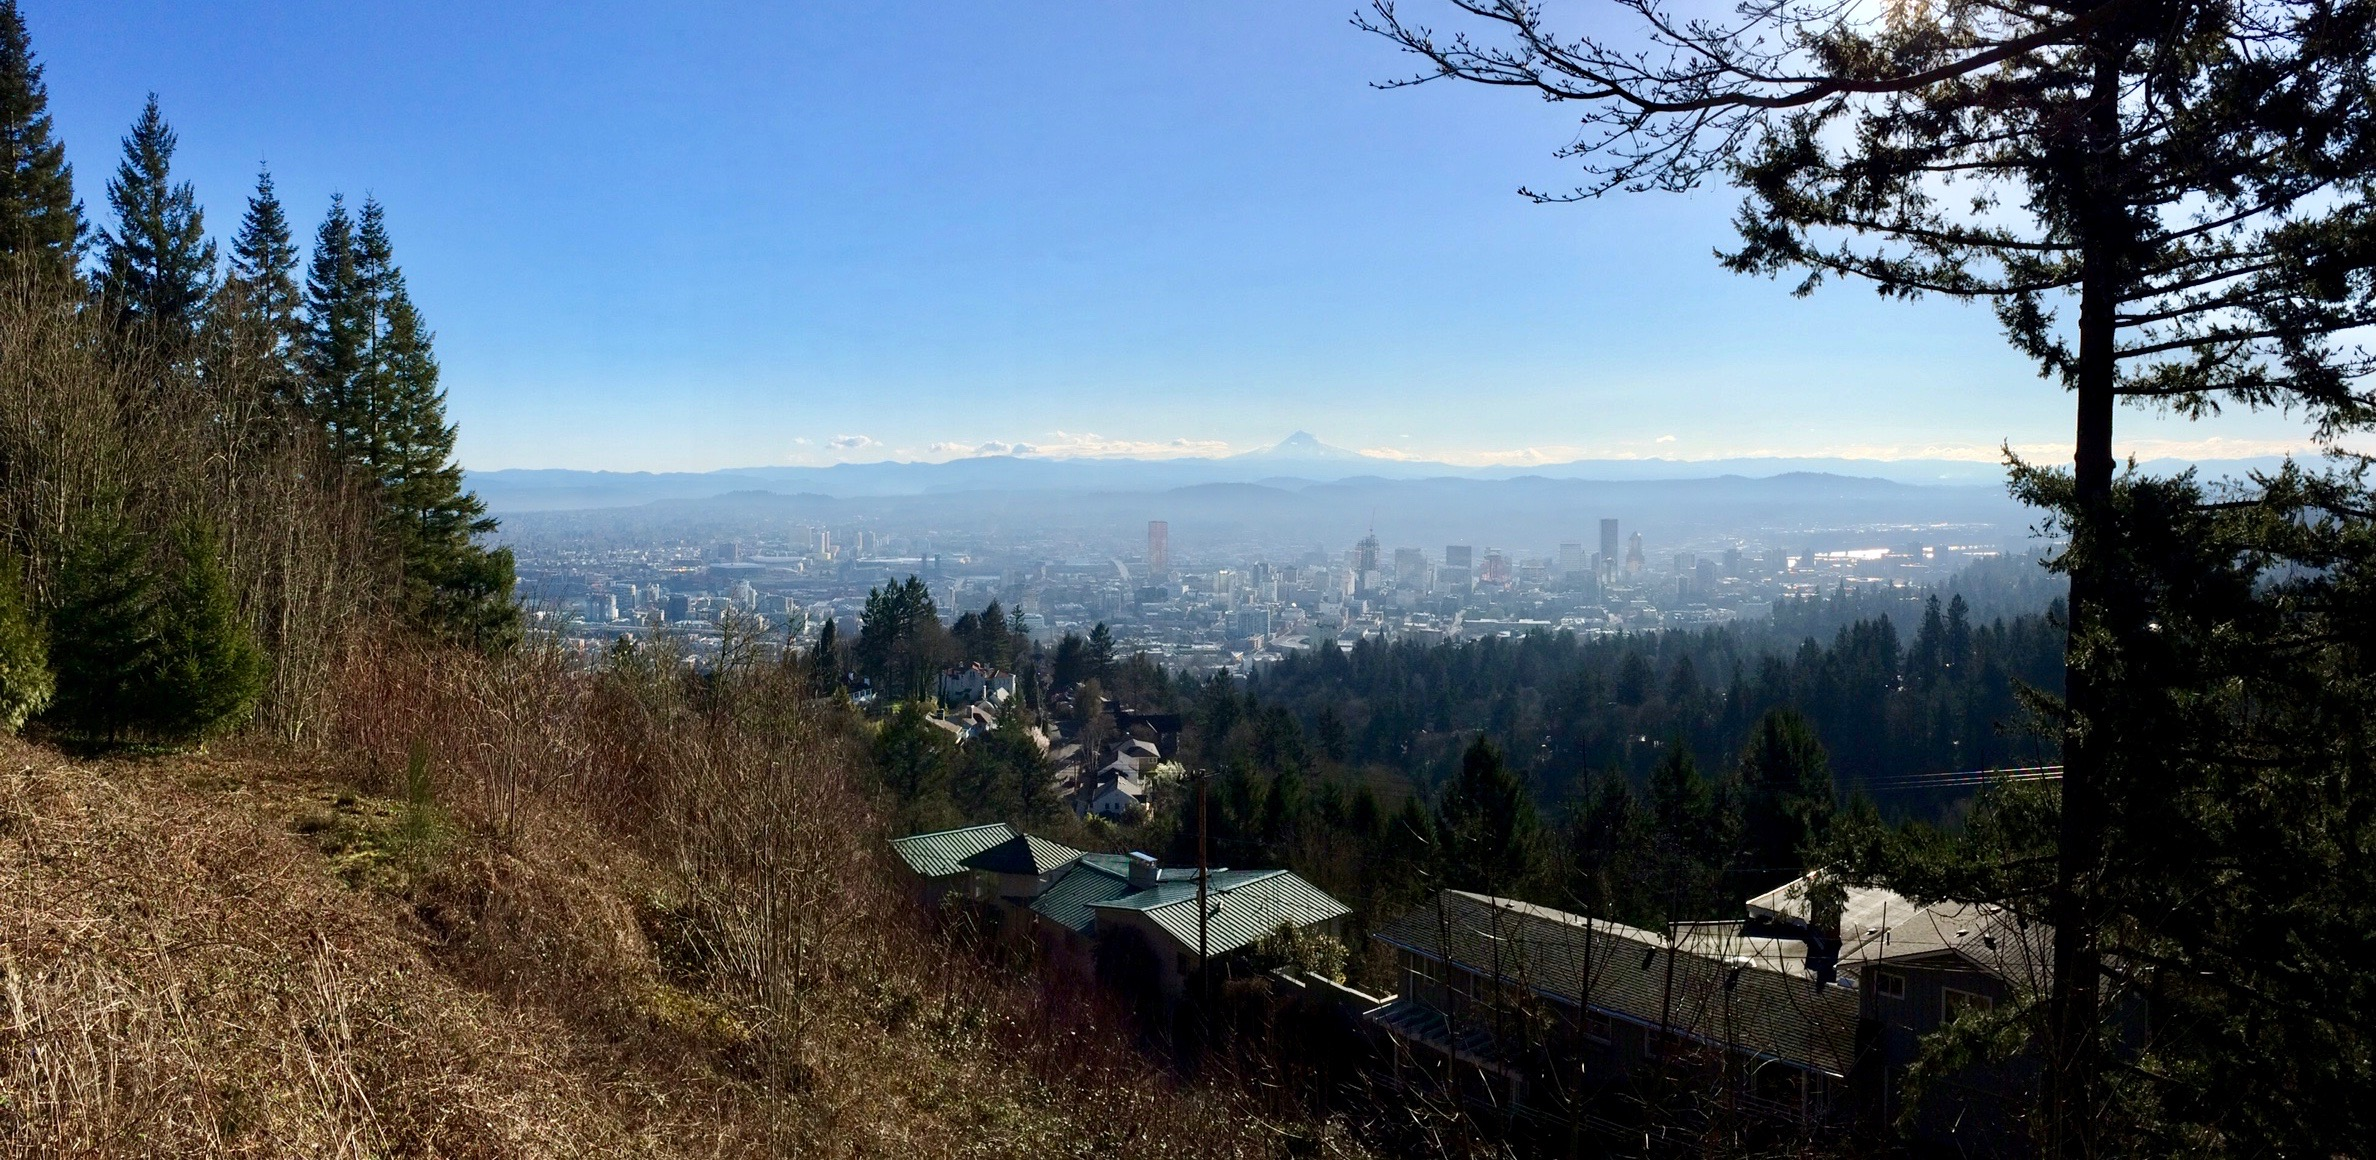 The view from Pittock Mansion.This was not yesterday. It was raining yesterday.